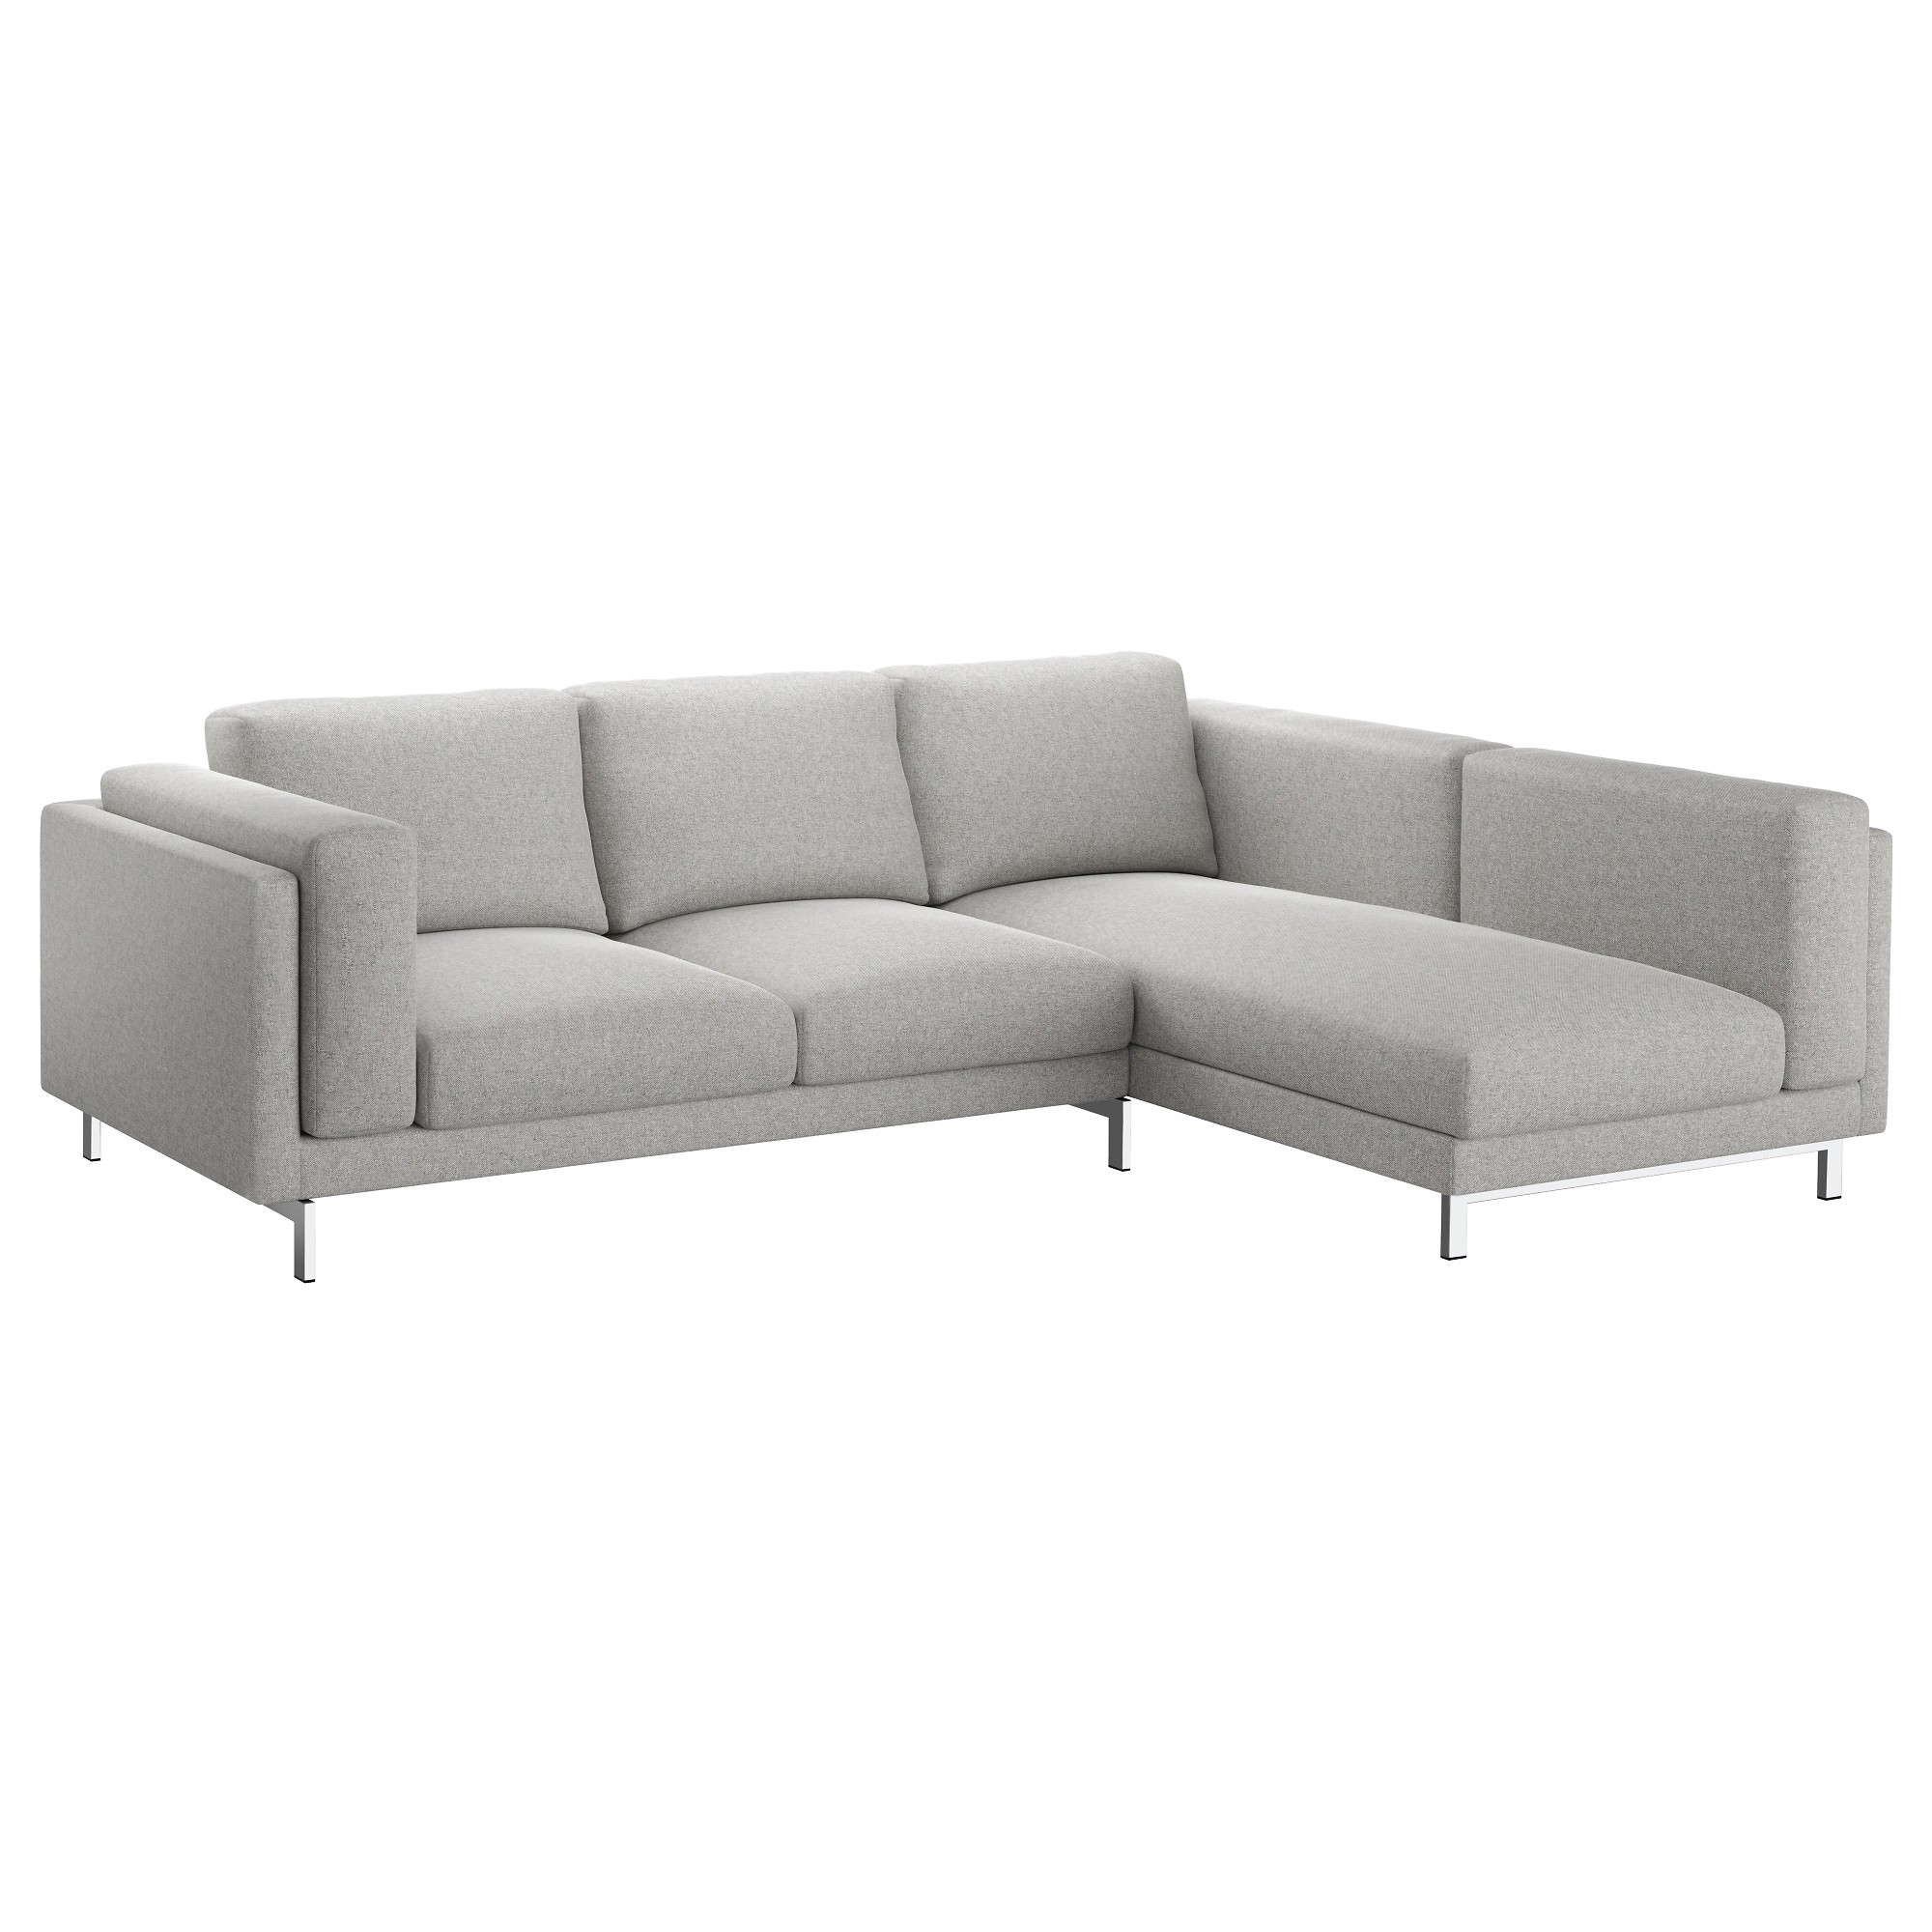 double lounge chaise of couches furniture inspirational best sofa current ideas within accent view recliners chairs